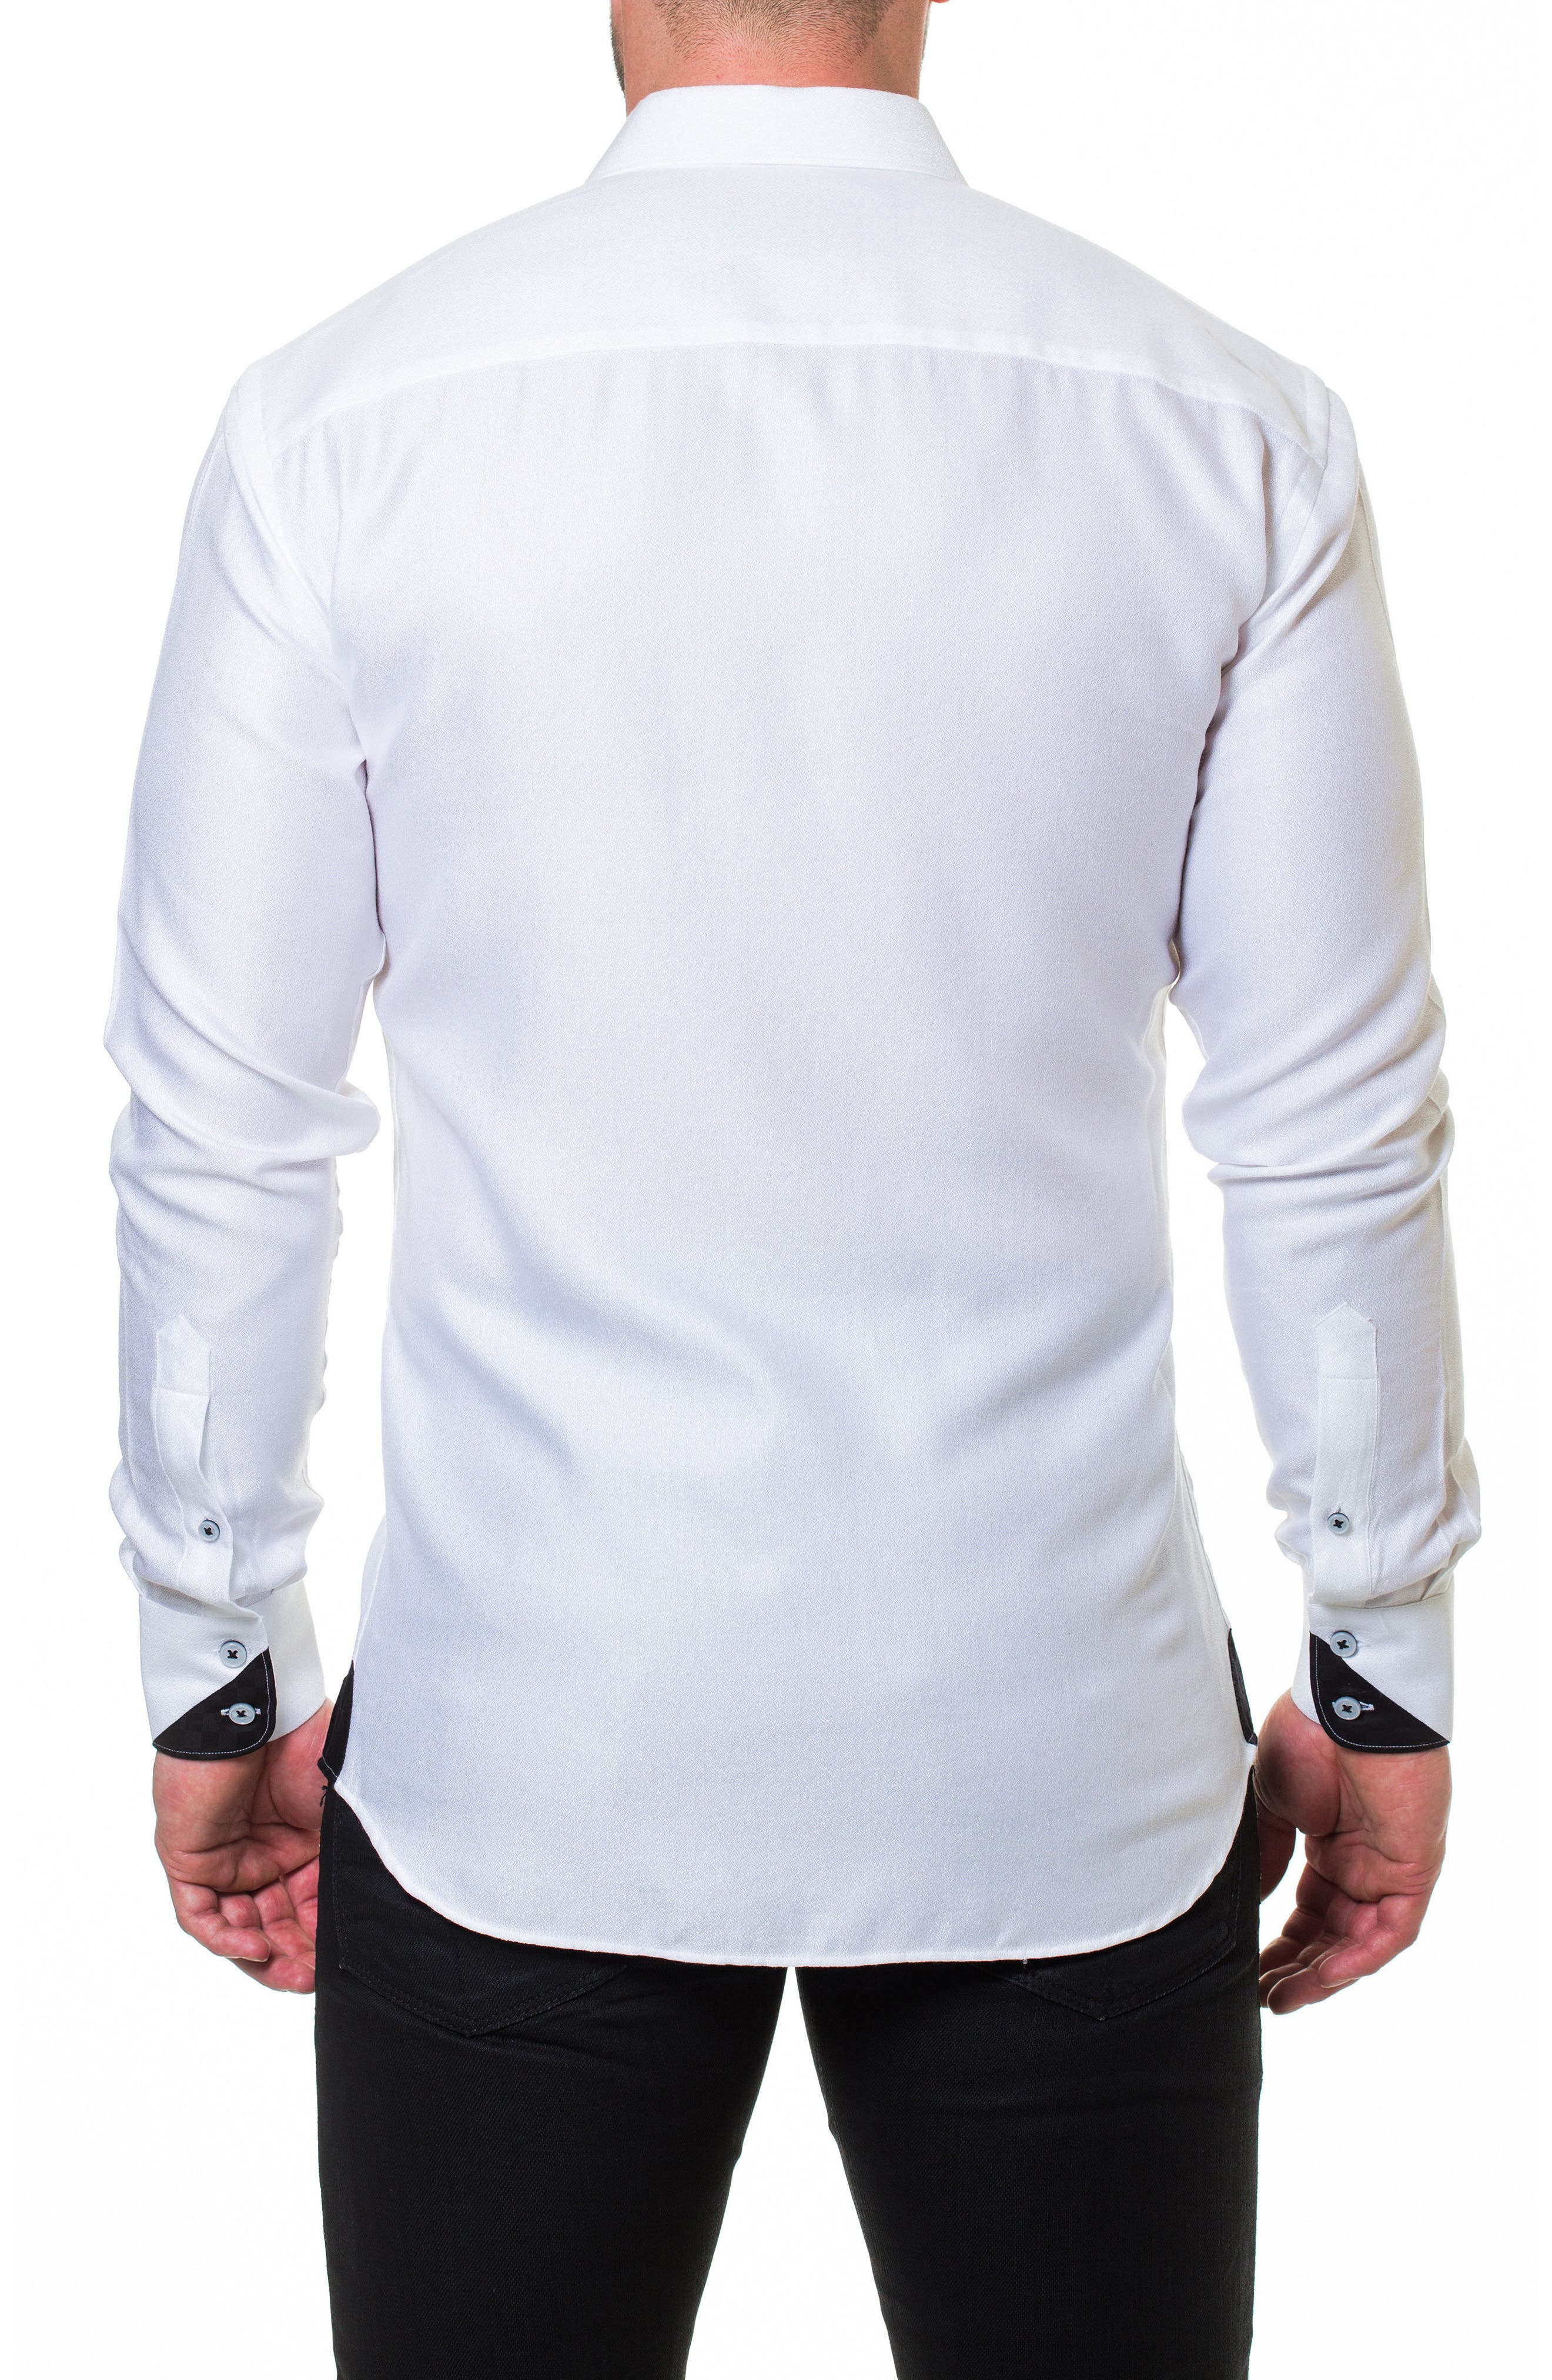 Wall Street Serenity White Slim Fit Sport Shirt,                             Alternate thumbnail 2, color,                             White